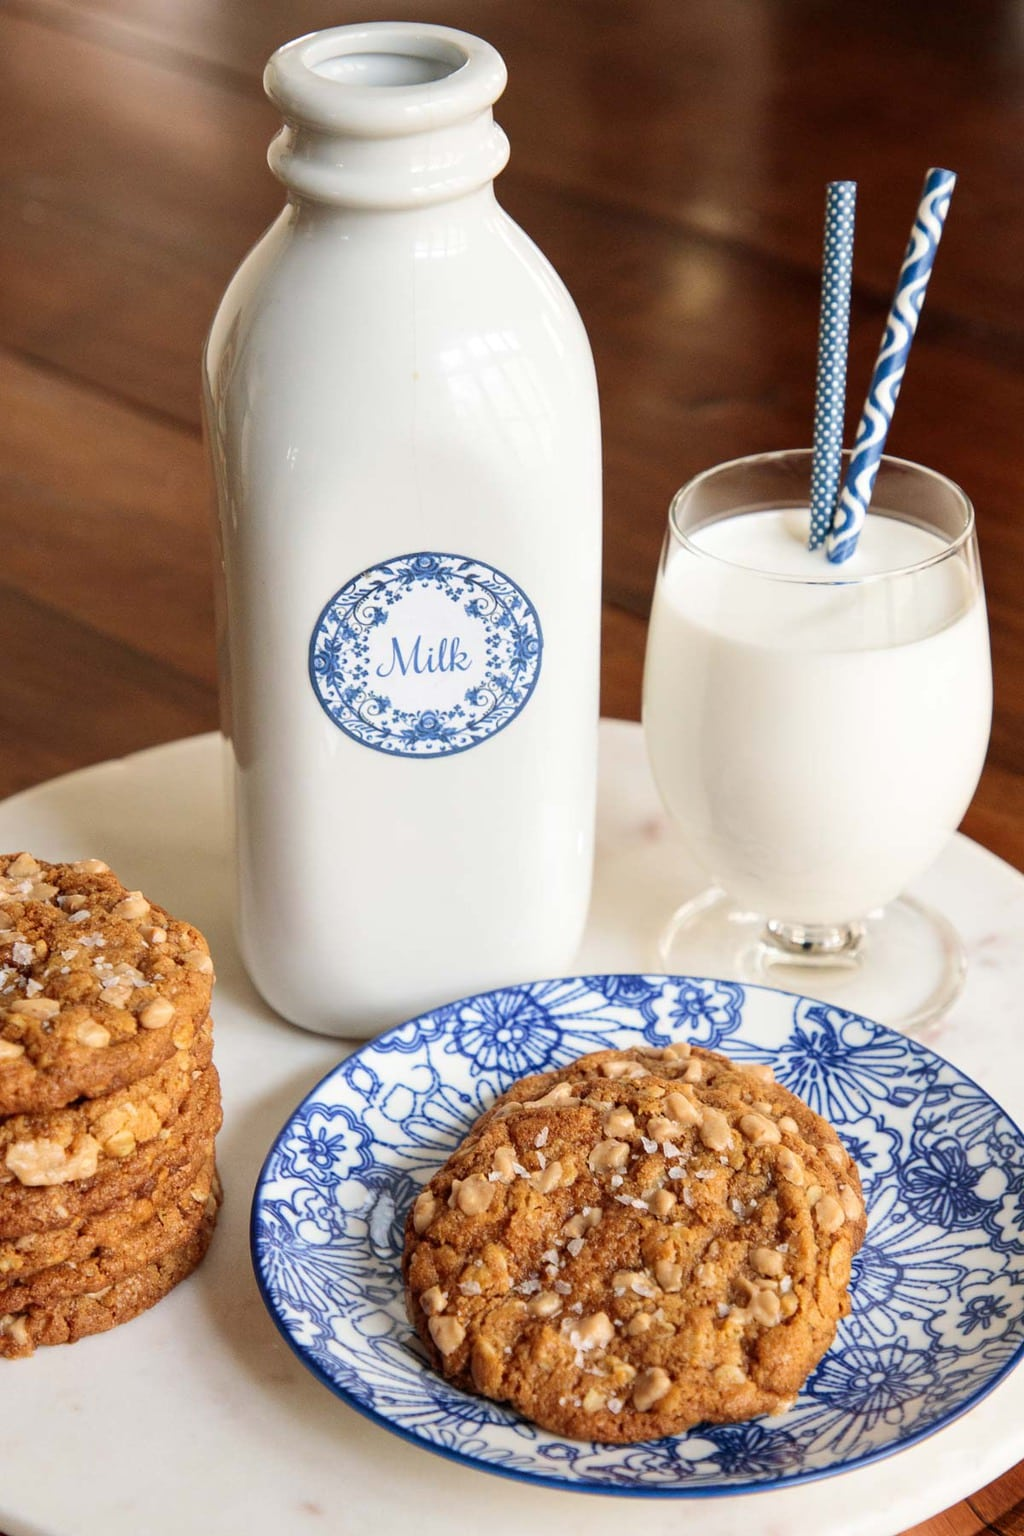 Photo of Toffee Oatmeal Peanut Butter Cookies on a white marble platter with a jug and a glass of milk in the background.